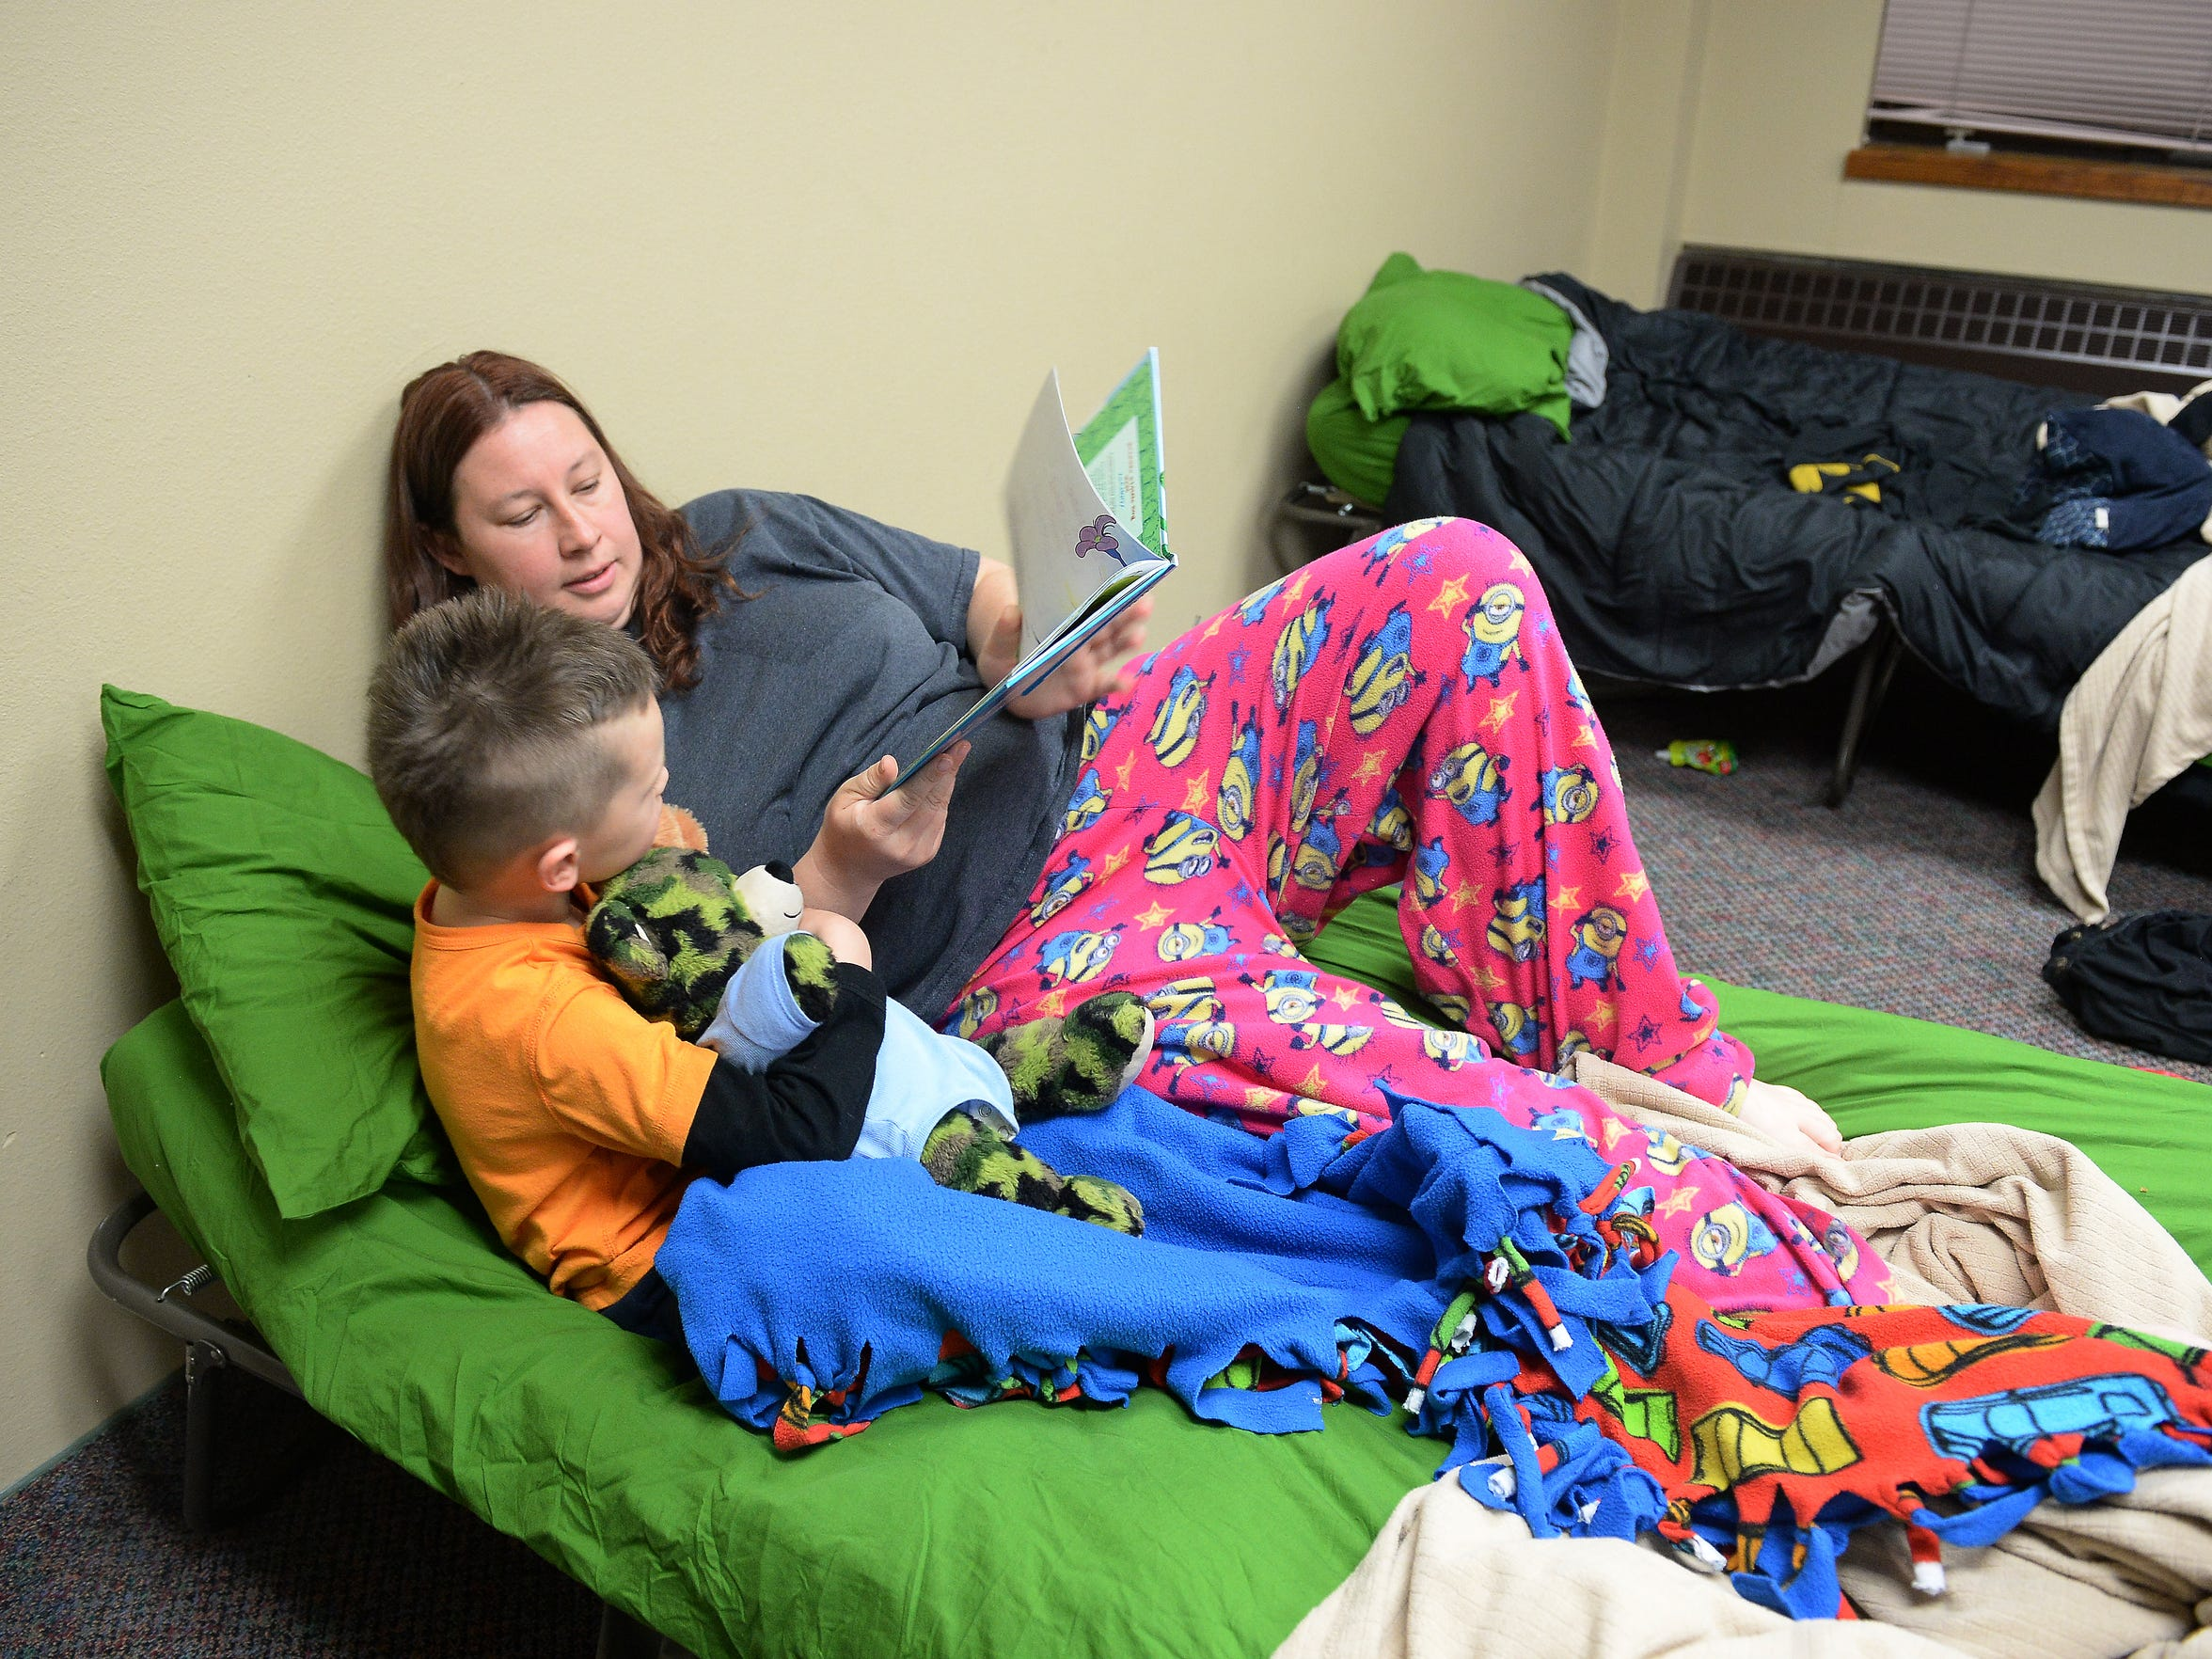 Fawn Martin reads a bedtime story to her son, Zayden, in the Sunday school classroom that serves as their bedroom for the week at Summitview Church on March 15, 2016.